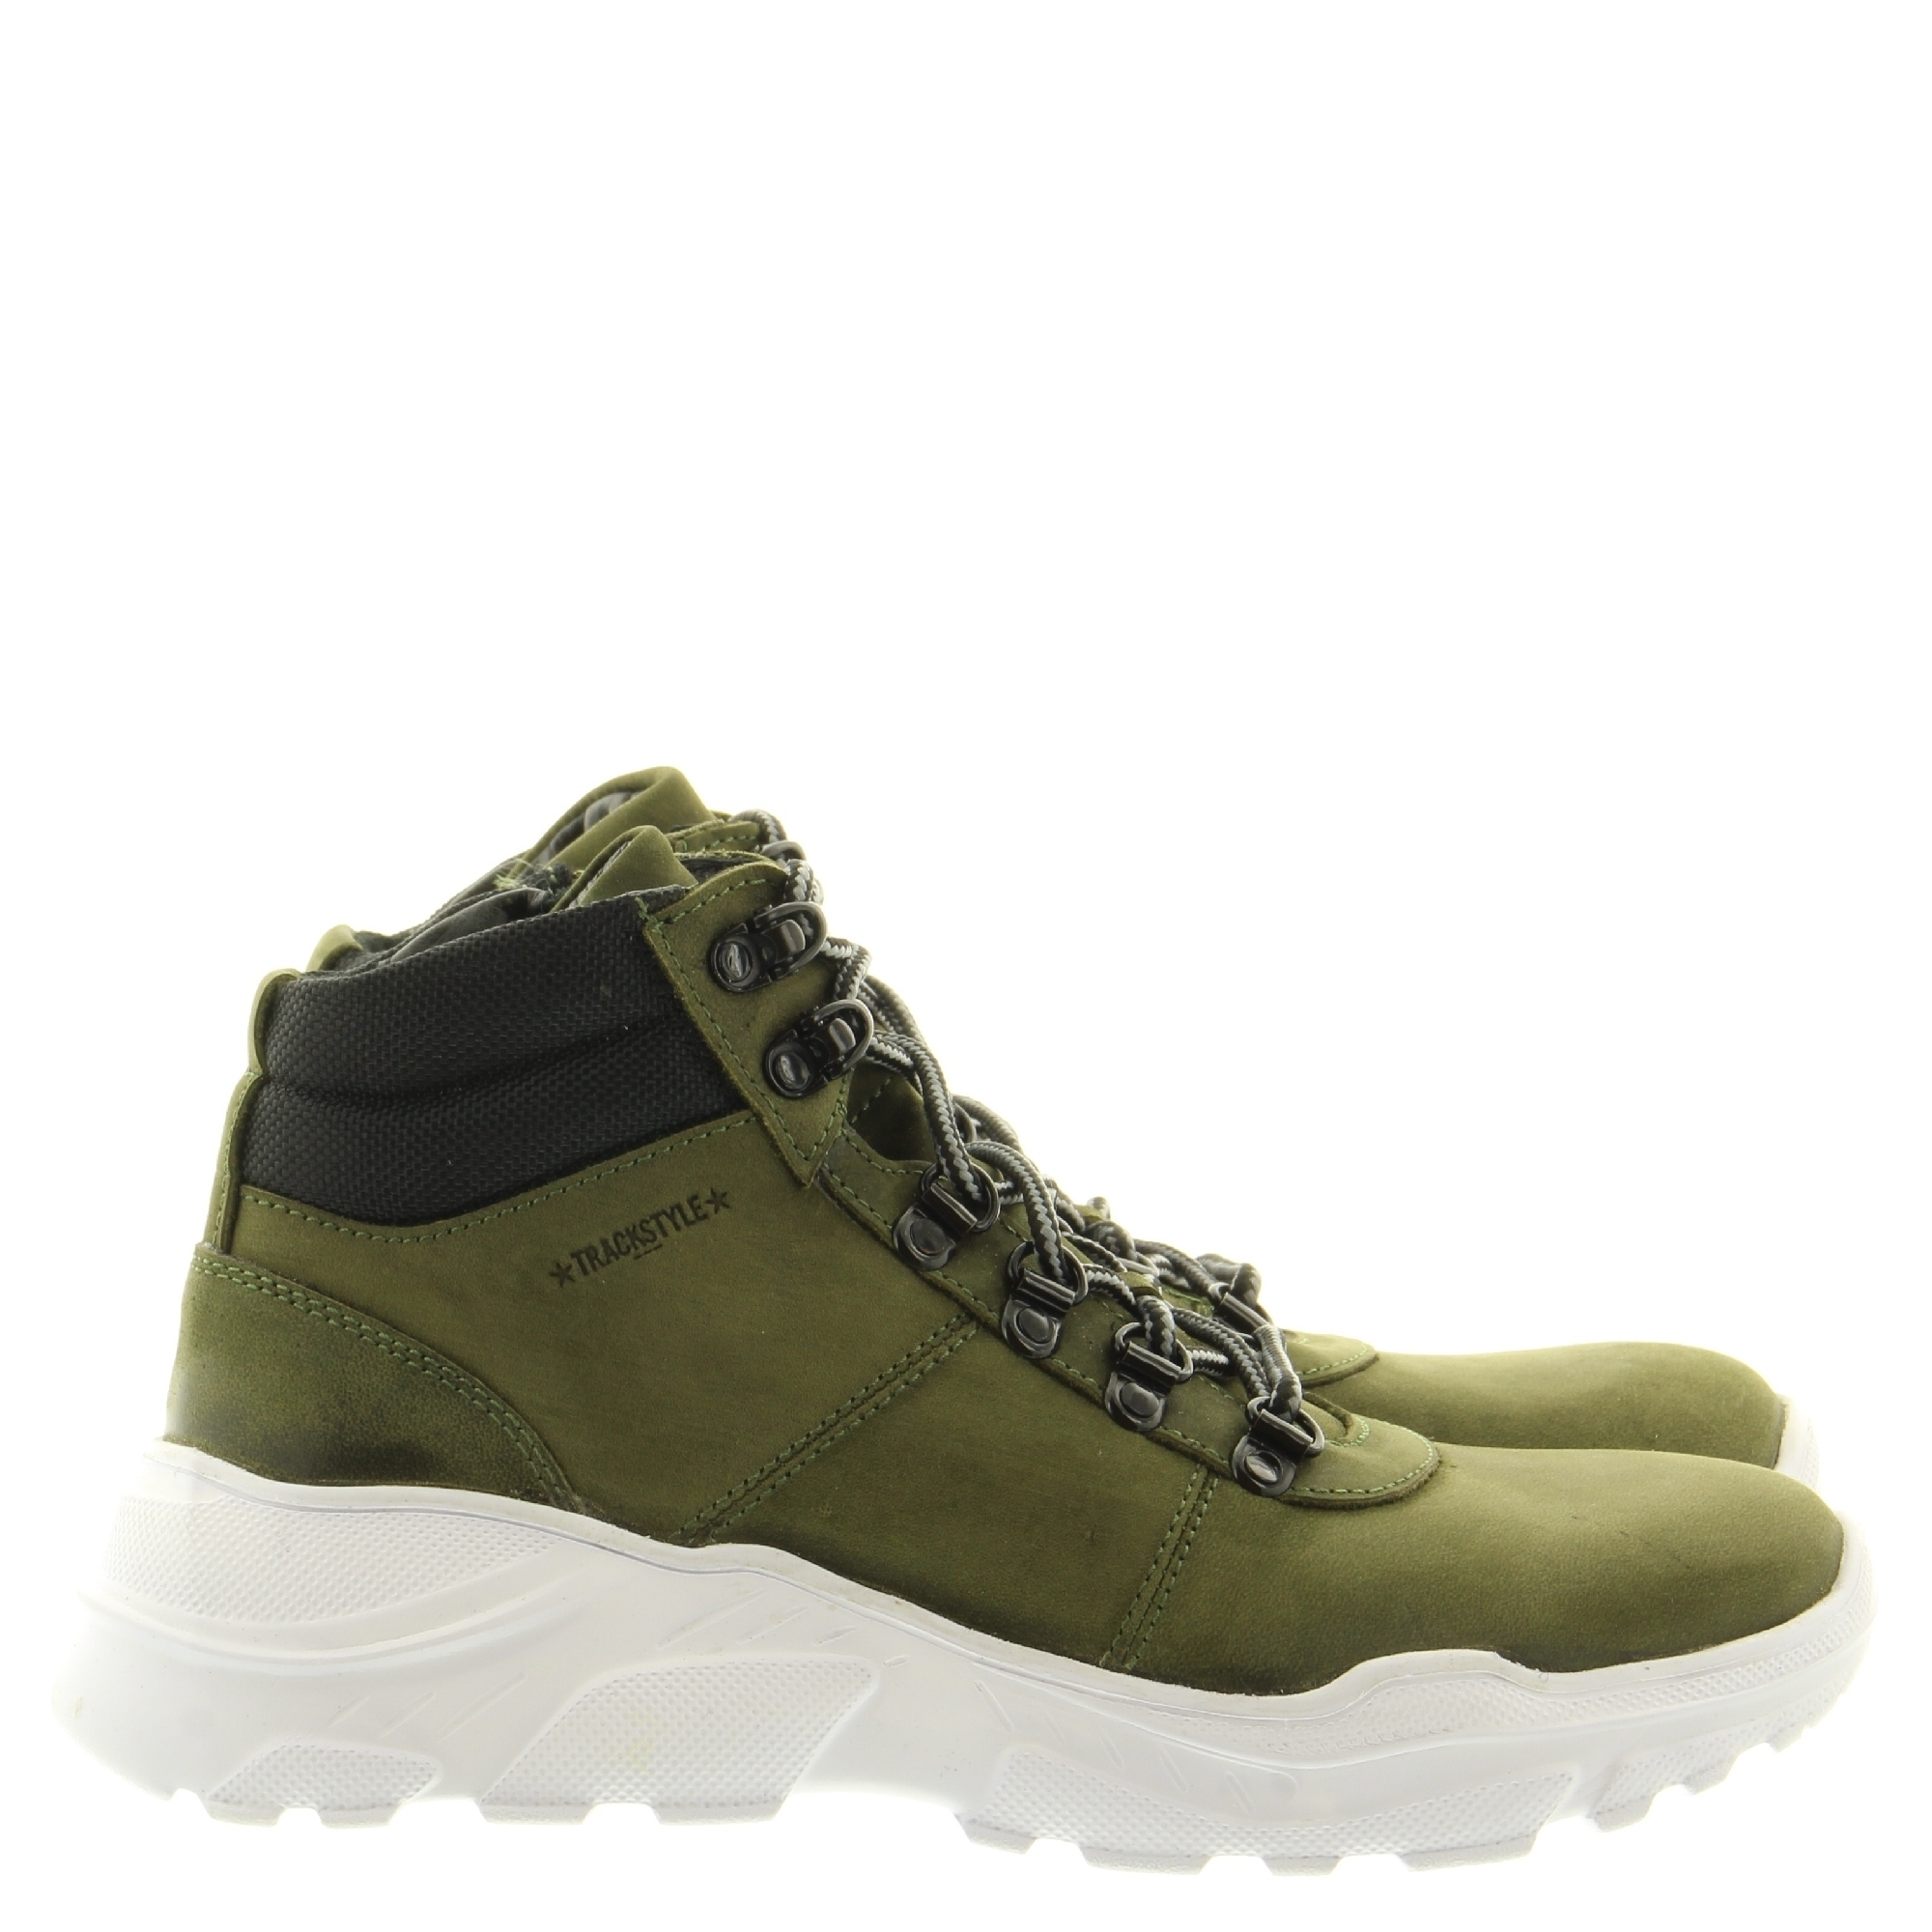 Twins Trackstyle 320898 569 Army Green